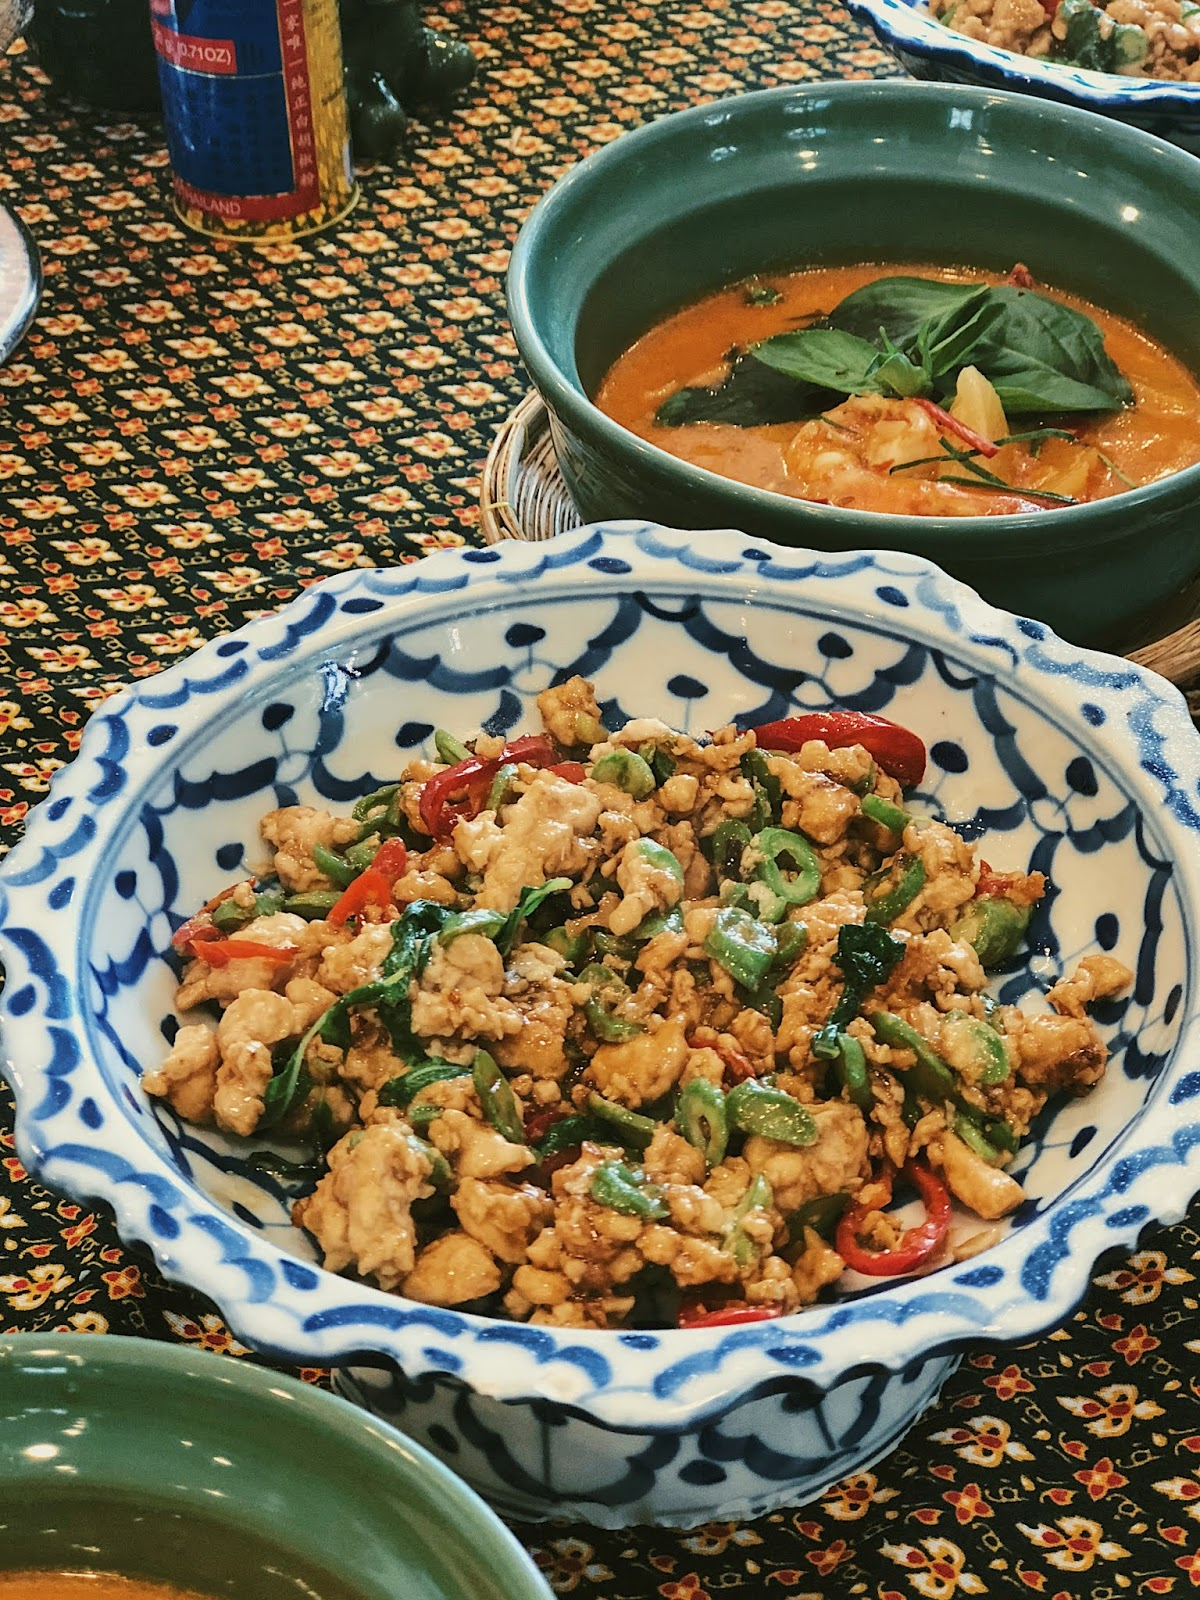 Stir-fried chicken with holy basil leaves (phad kra prow gai)